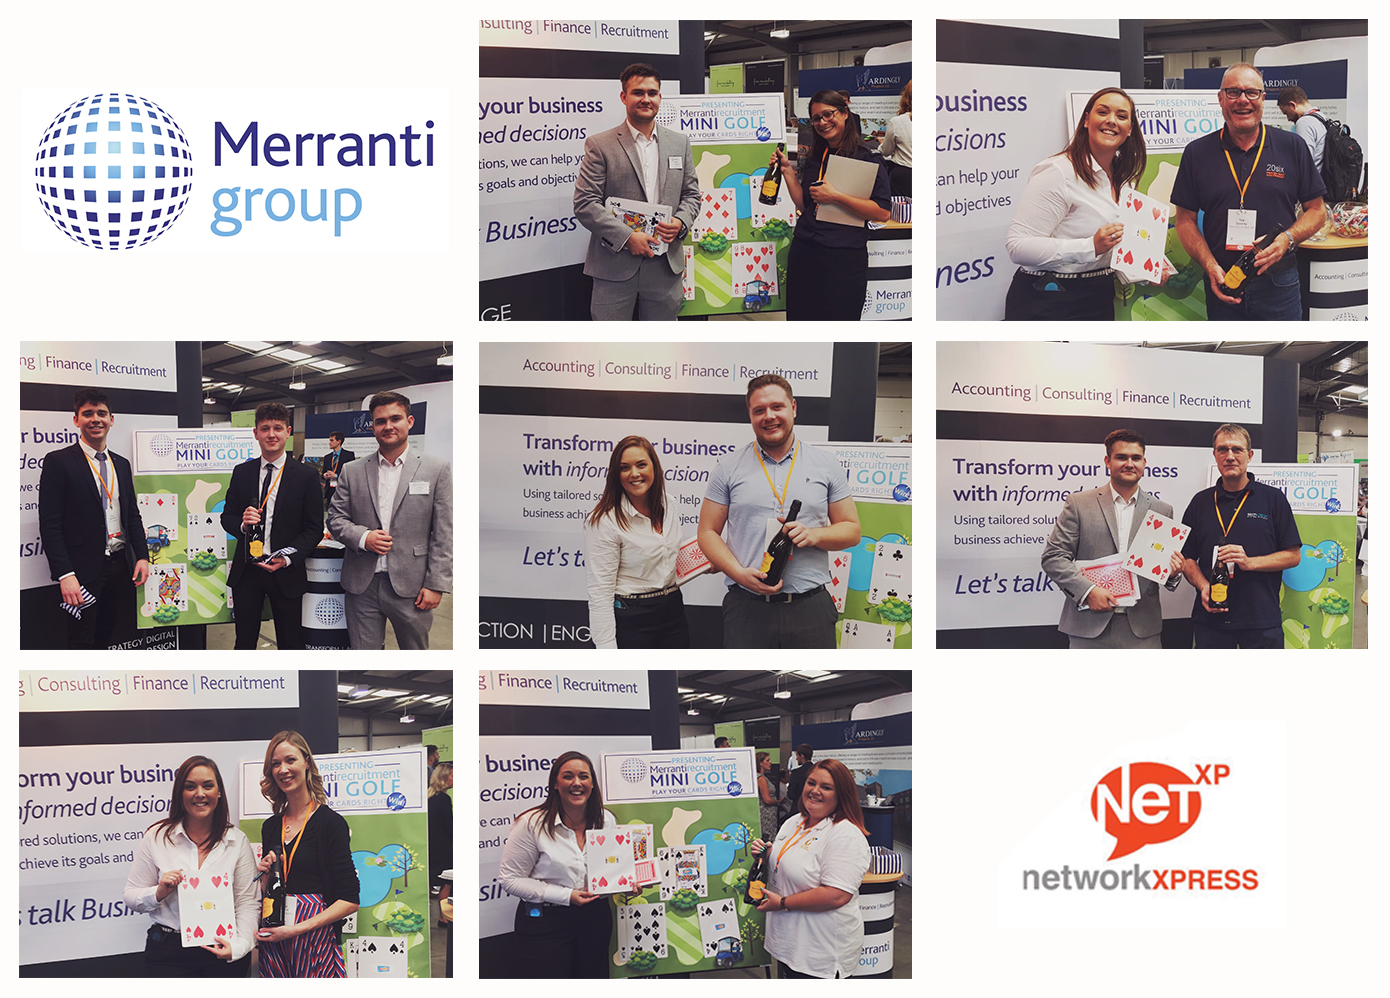 Merranti at Net XP, Play Your Cards Right Winners